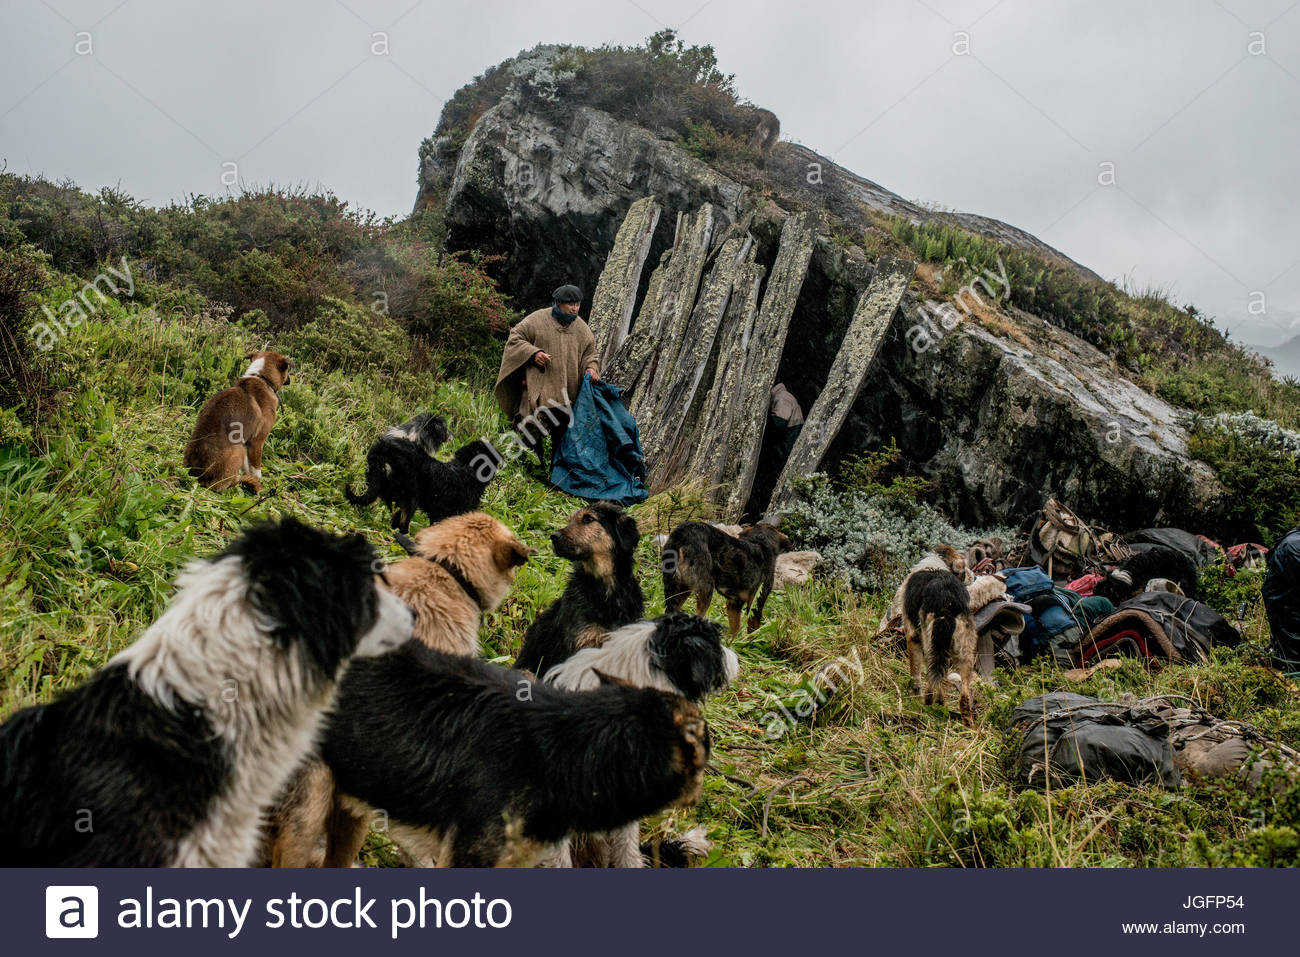 Gauchos find an old shelter under a boulder to spend the night on the way to Sutherland, in Peninsula Antonio Varas. - Stock Image